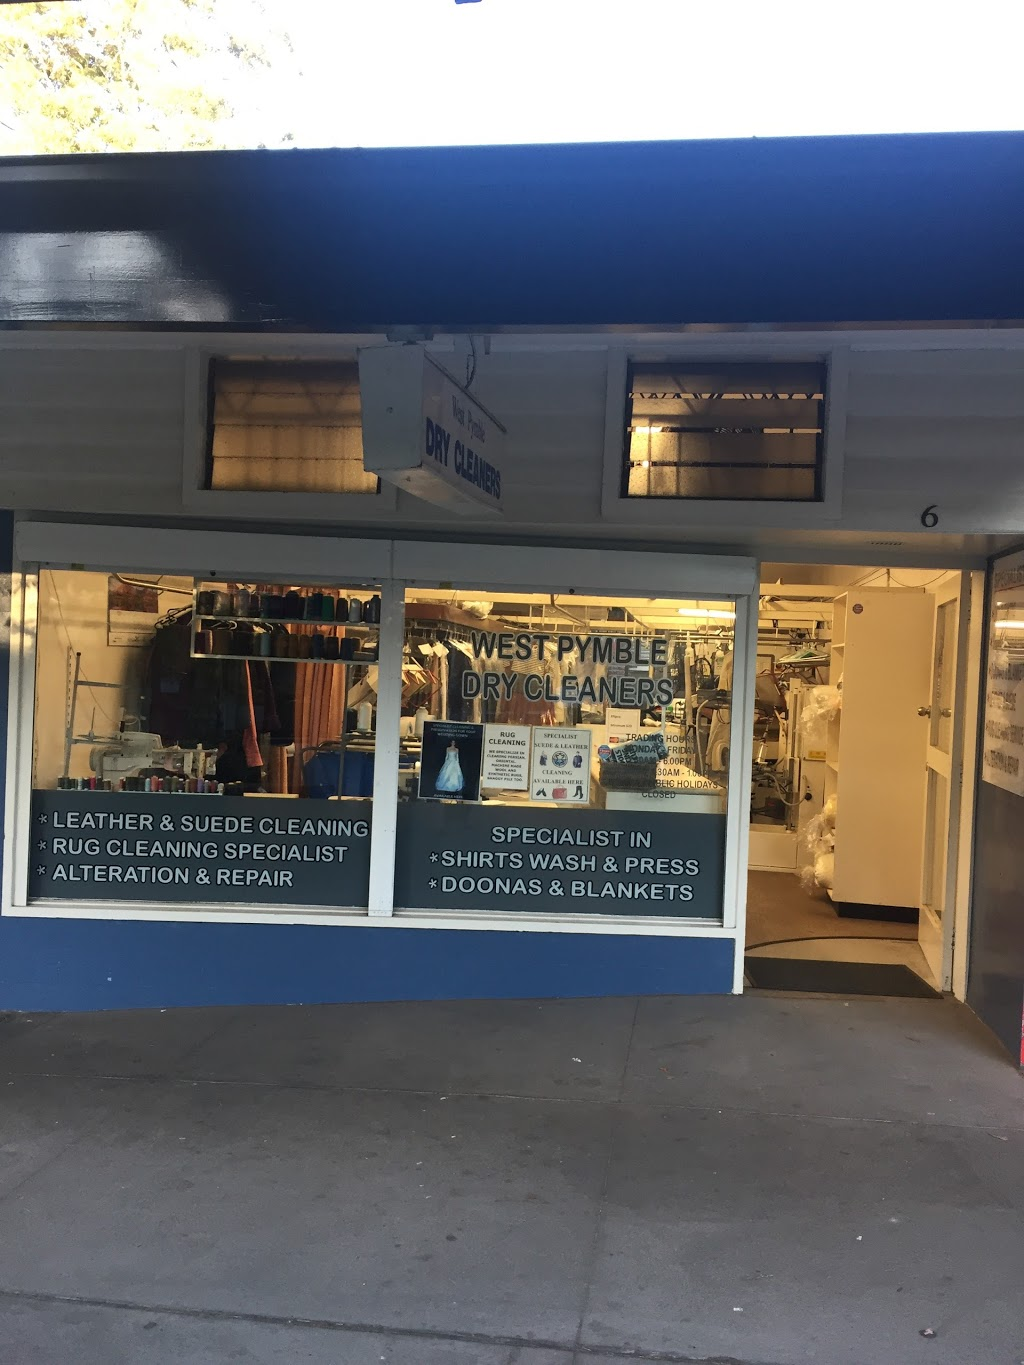 West Pymble Dry Cleaners Laundry 6 Philip Mall West